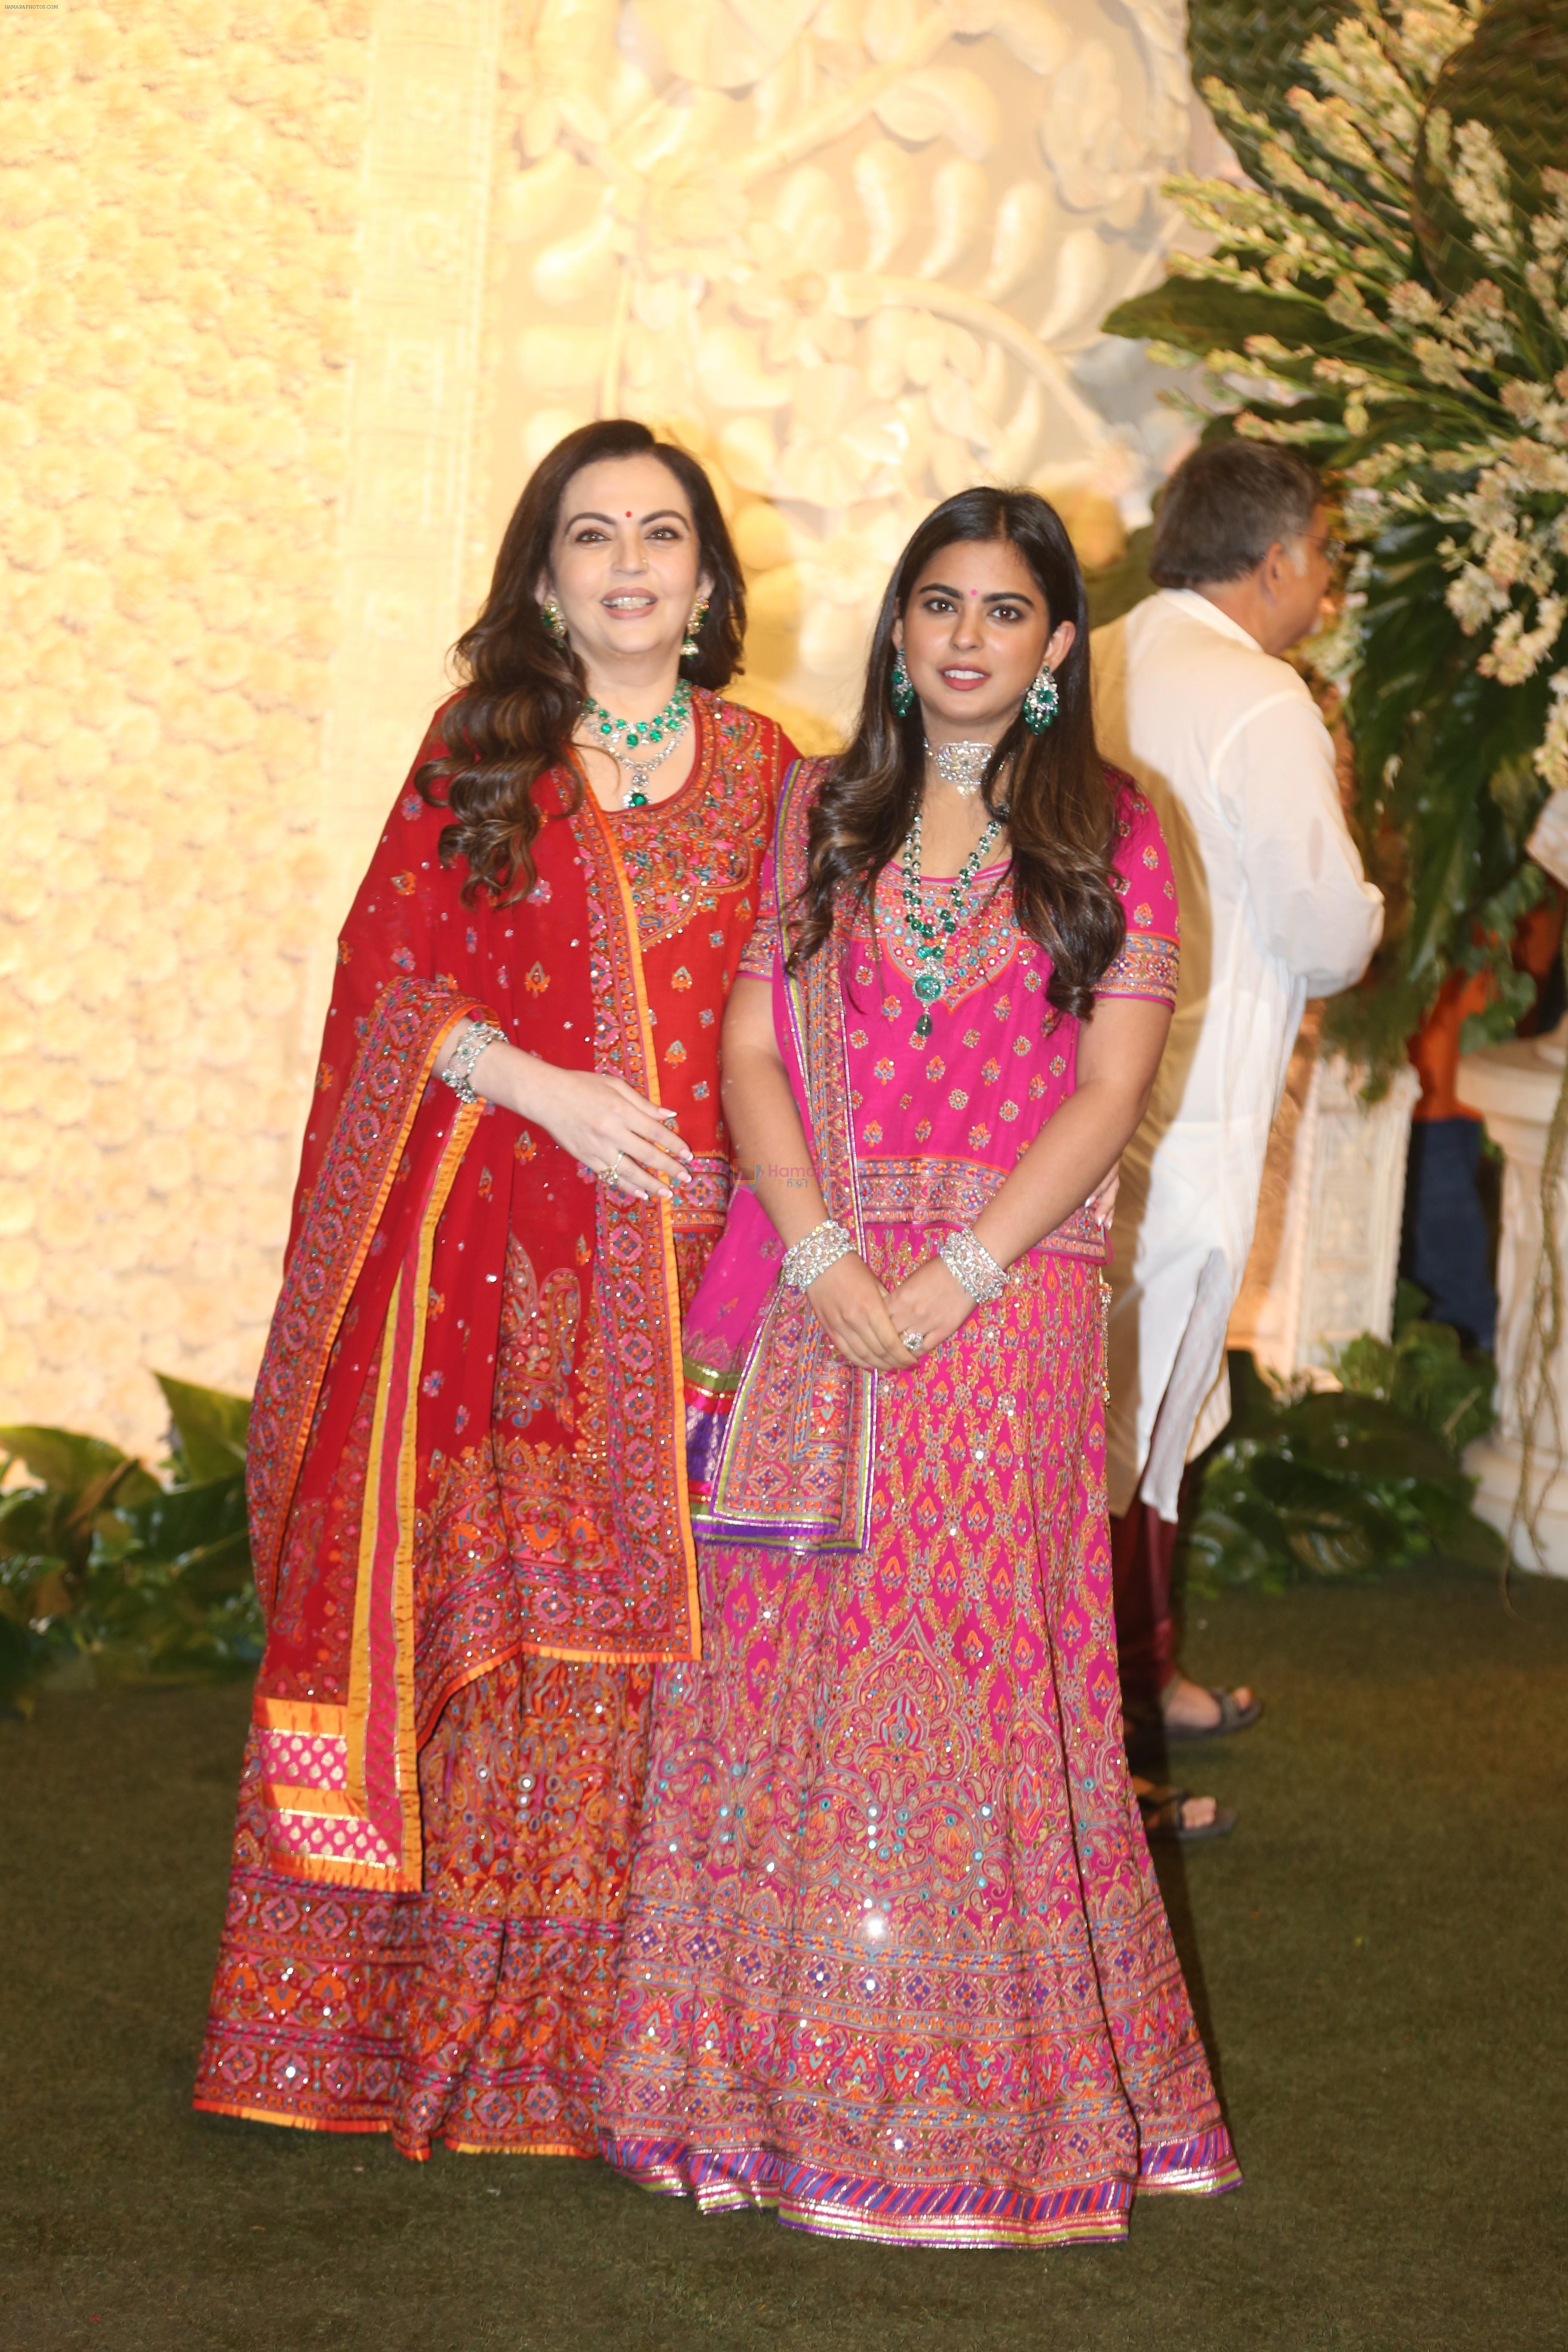 Nita Ambani, Isha Ambani at Mukesh Ambani's house for Ganpati celebration on 2nd Sept 2019